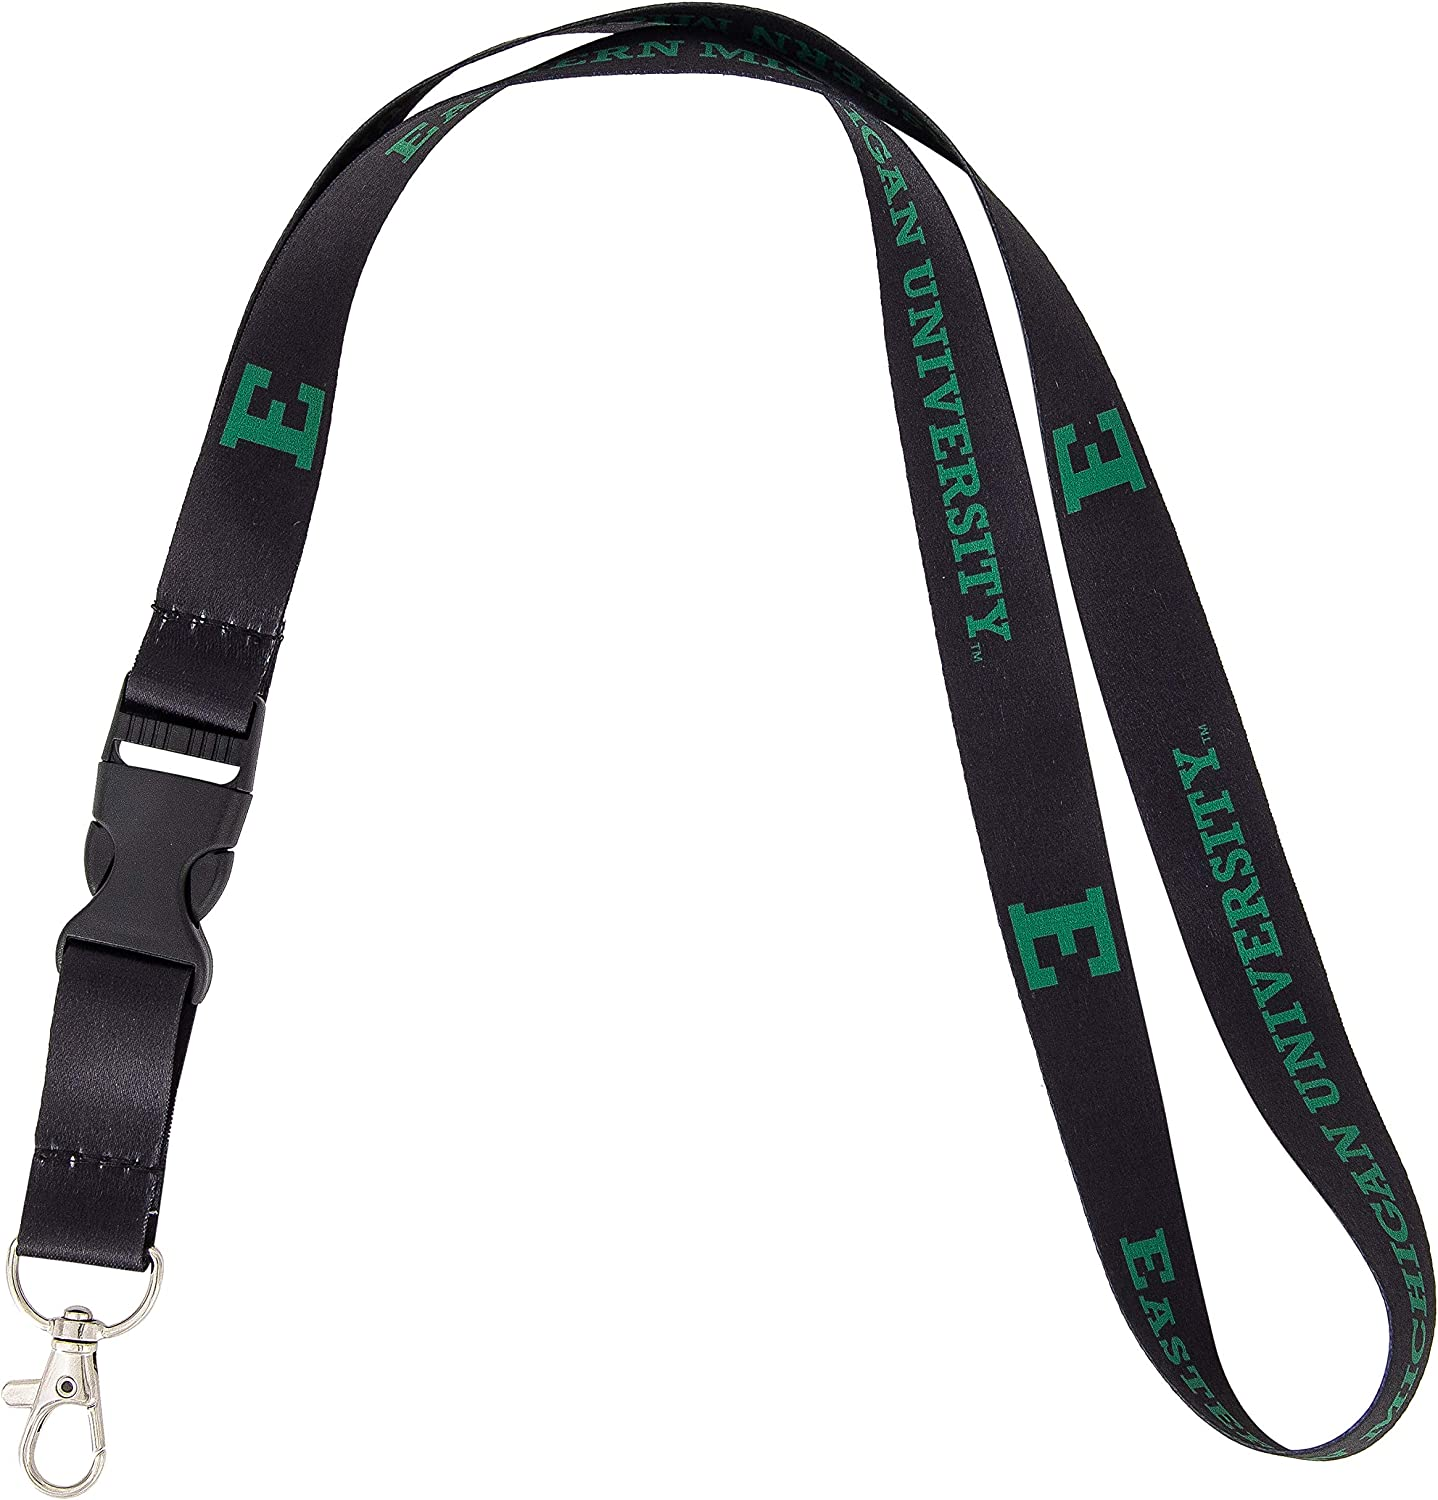 Eastern Michigan University EMU Eagles NCAA Car Keys ID Badge Holder Lanyard Keychain Detachable Breakaway Snap Buckle